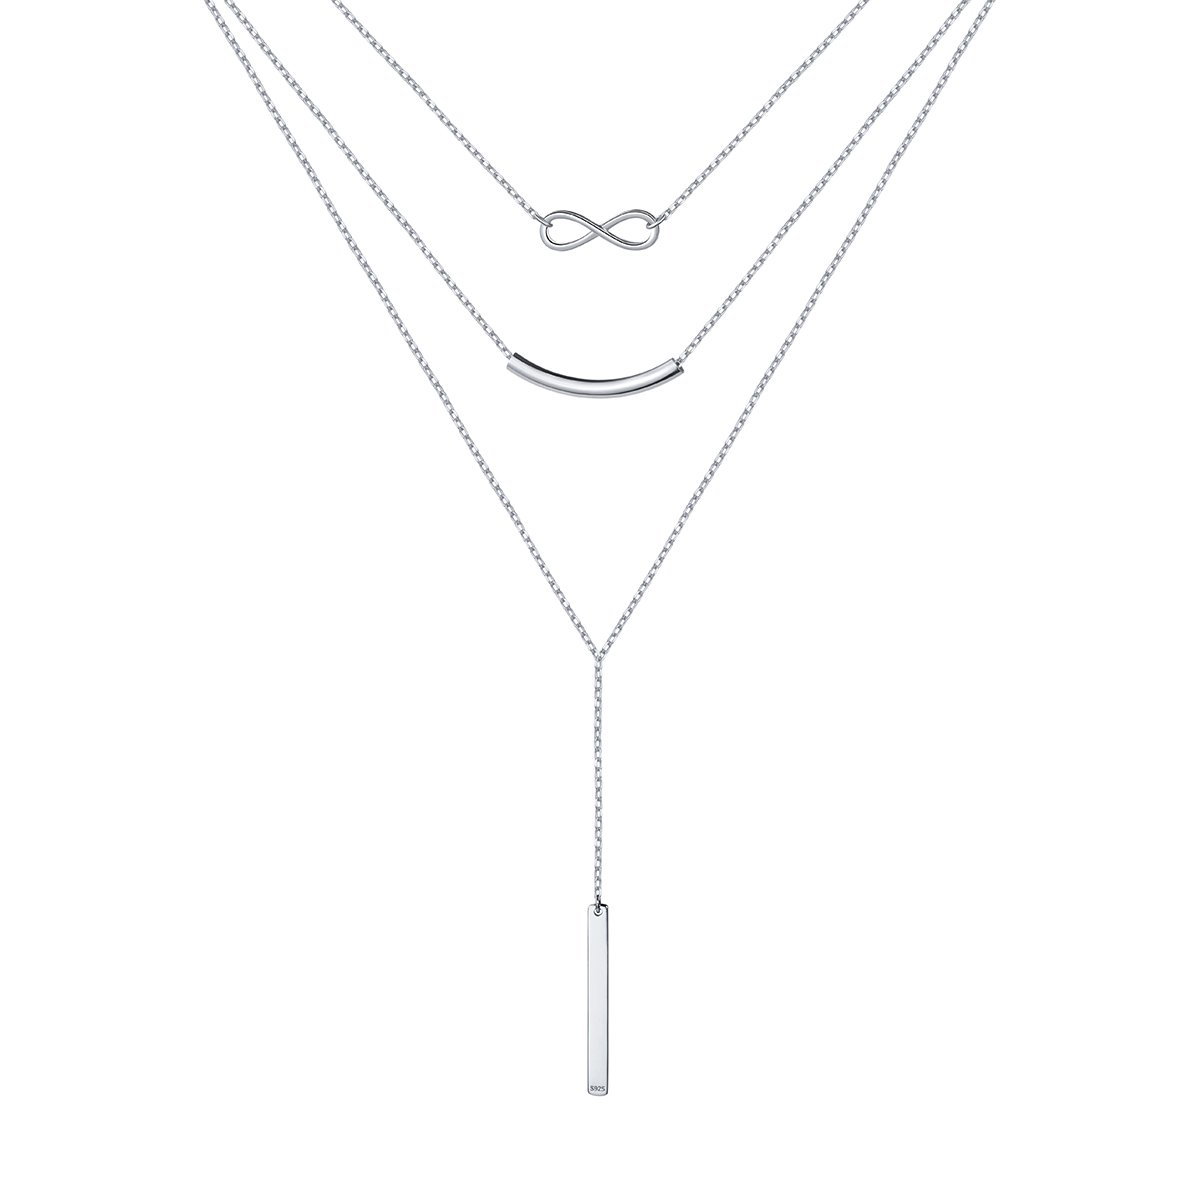 S925 Sterling Silver Multi Layered Triple Chain Choker Necklace Infinity and Bar Charm 16+2''